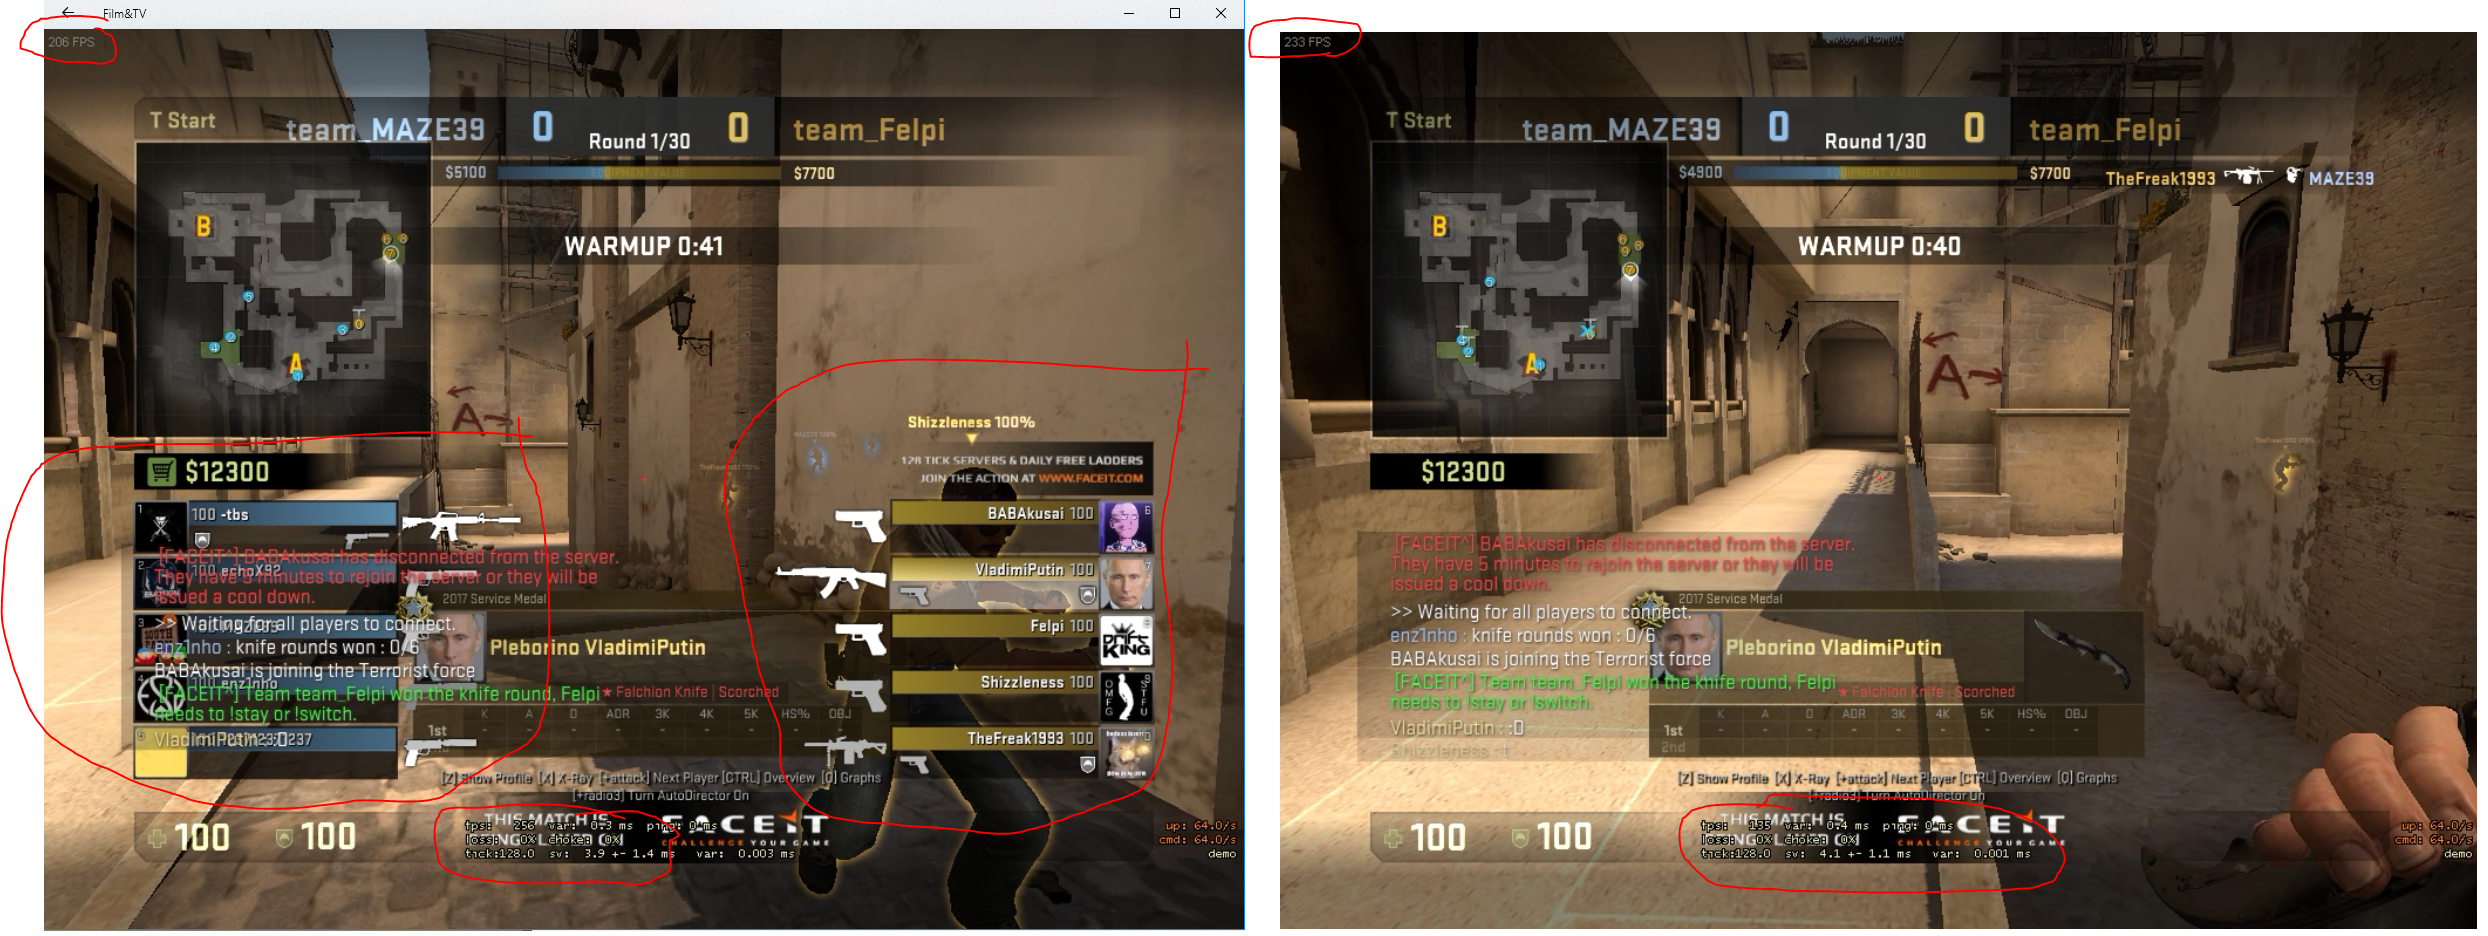 cs go max acceptable matchmaking ping console command dating active duty military